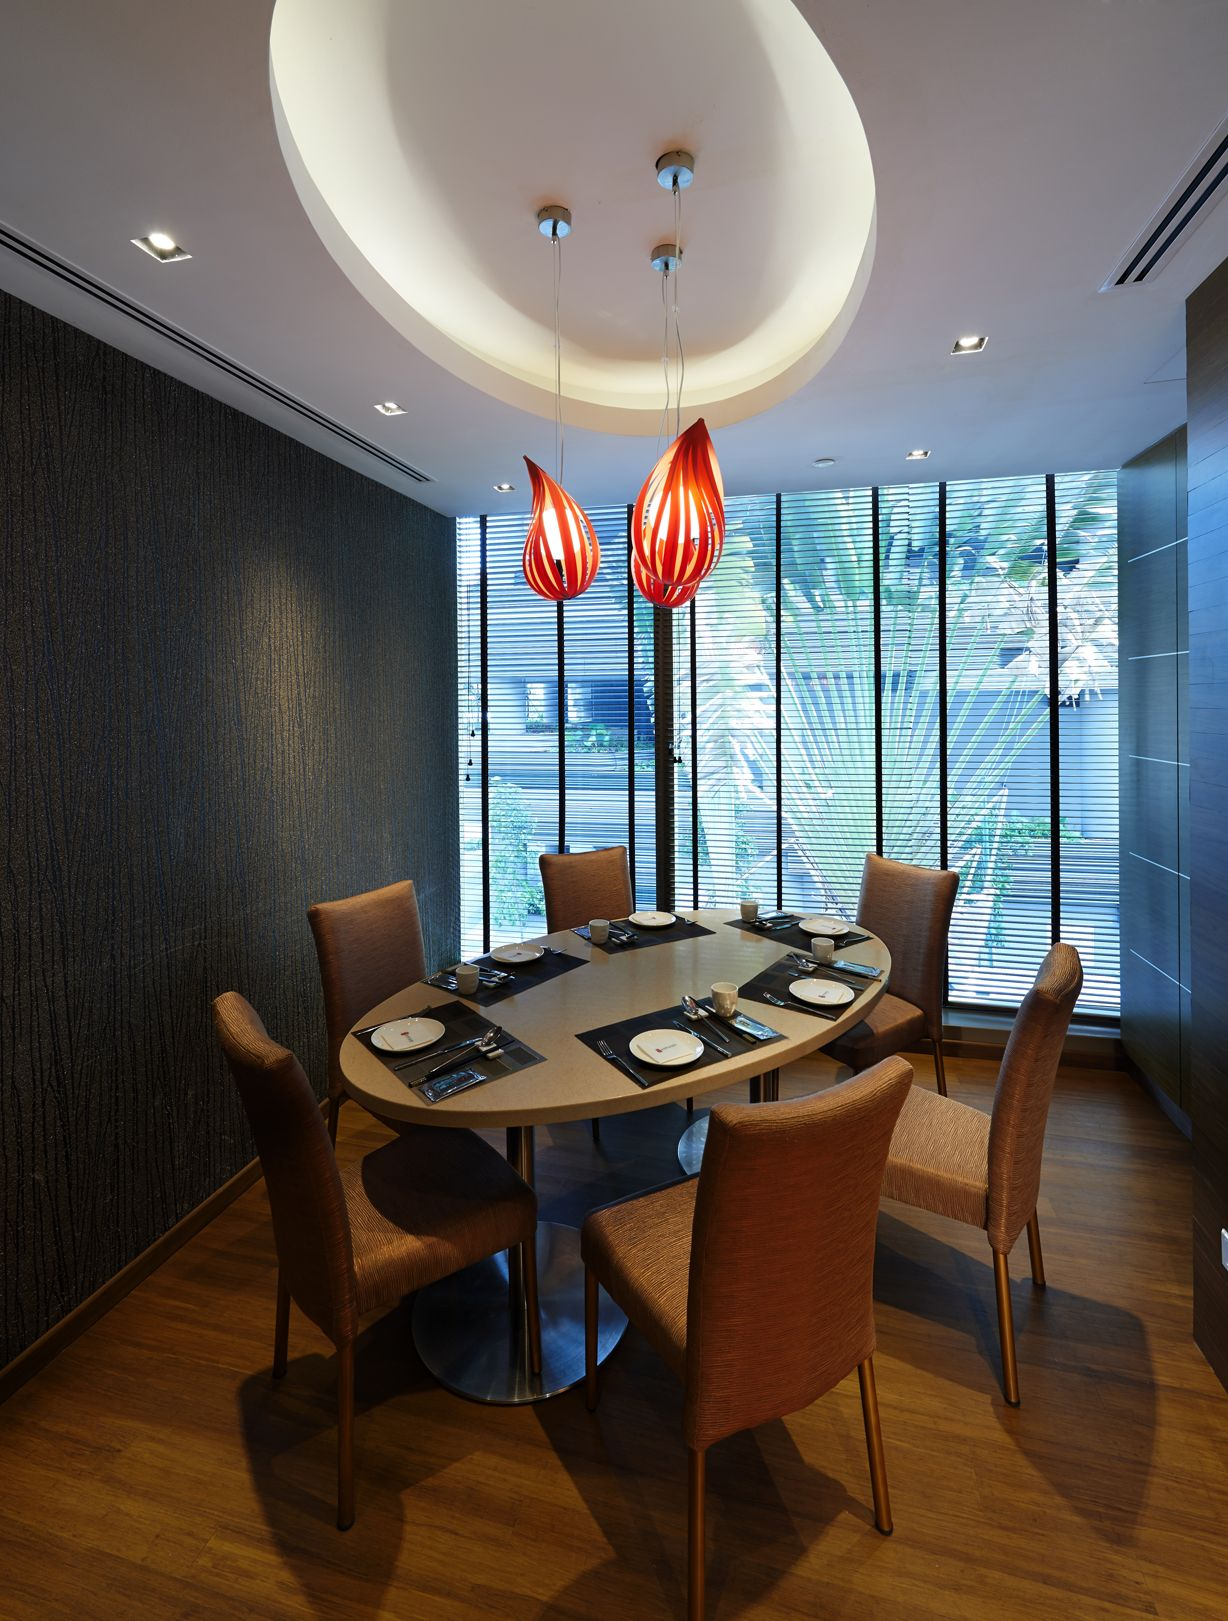 Peach Garden Chinese Dining At Chinatown Point Private Dining Room Amusing Chinese Dining Room Table Design Inspiration